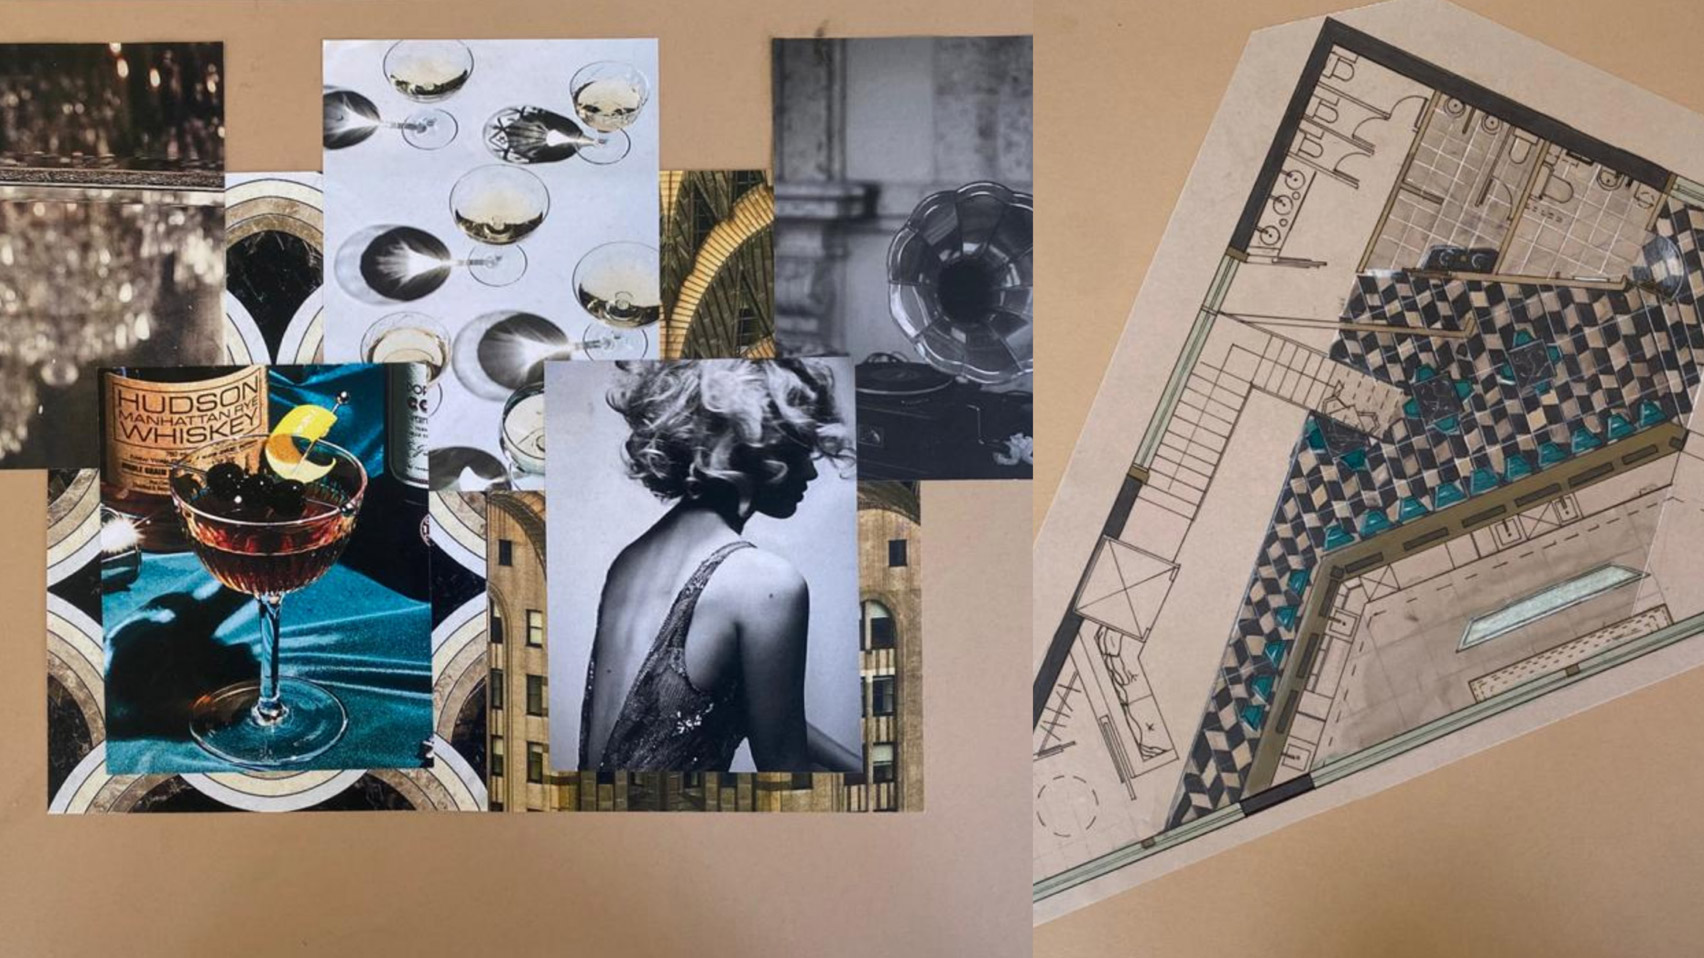 Venti: Speakeasy & Oyster bar by UAL student Cristina Iazzetta at VDF student show